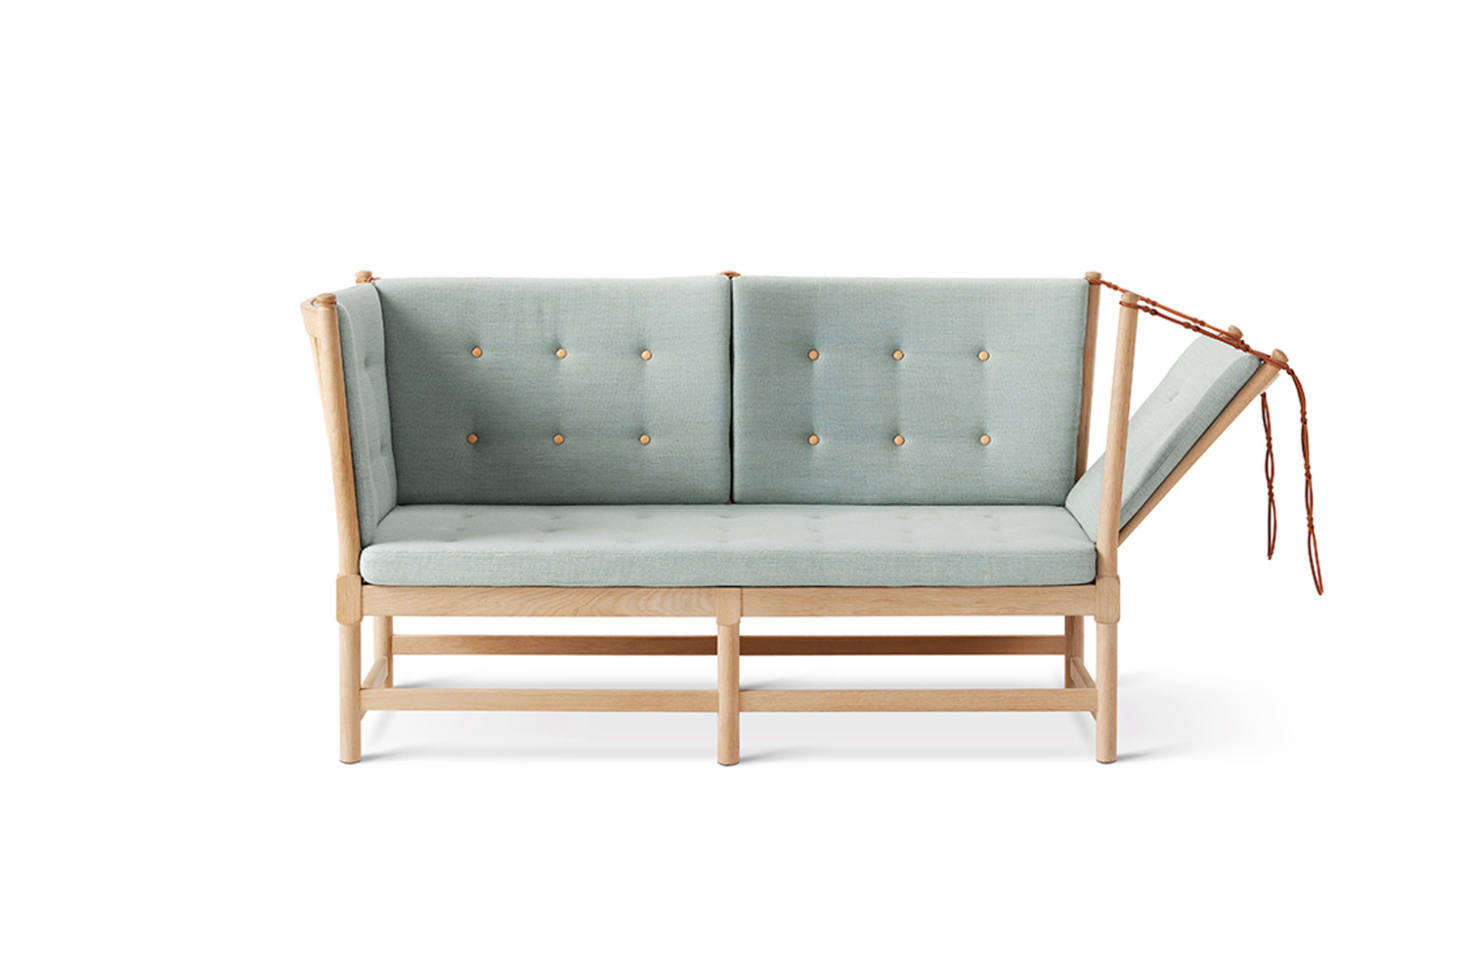 Børge Mogensen designed the Spoke Back Sofa in 1945 as an English daybed and French chaise combo, thanks to the hinged side. It's made from a solid oak frame and available in a range of upholstery options including leather, stripes, and woven plaid. Available in the US for $9,222 at Danish Design Store and in the UK for £7,621 at TwentyTwentyOne.